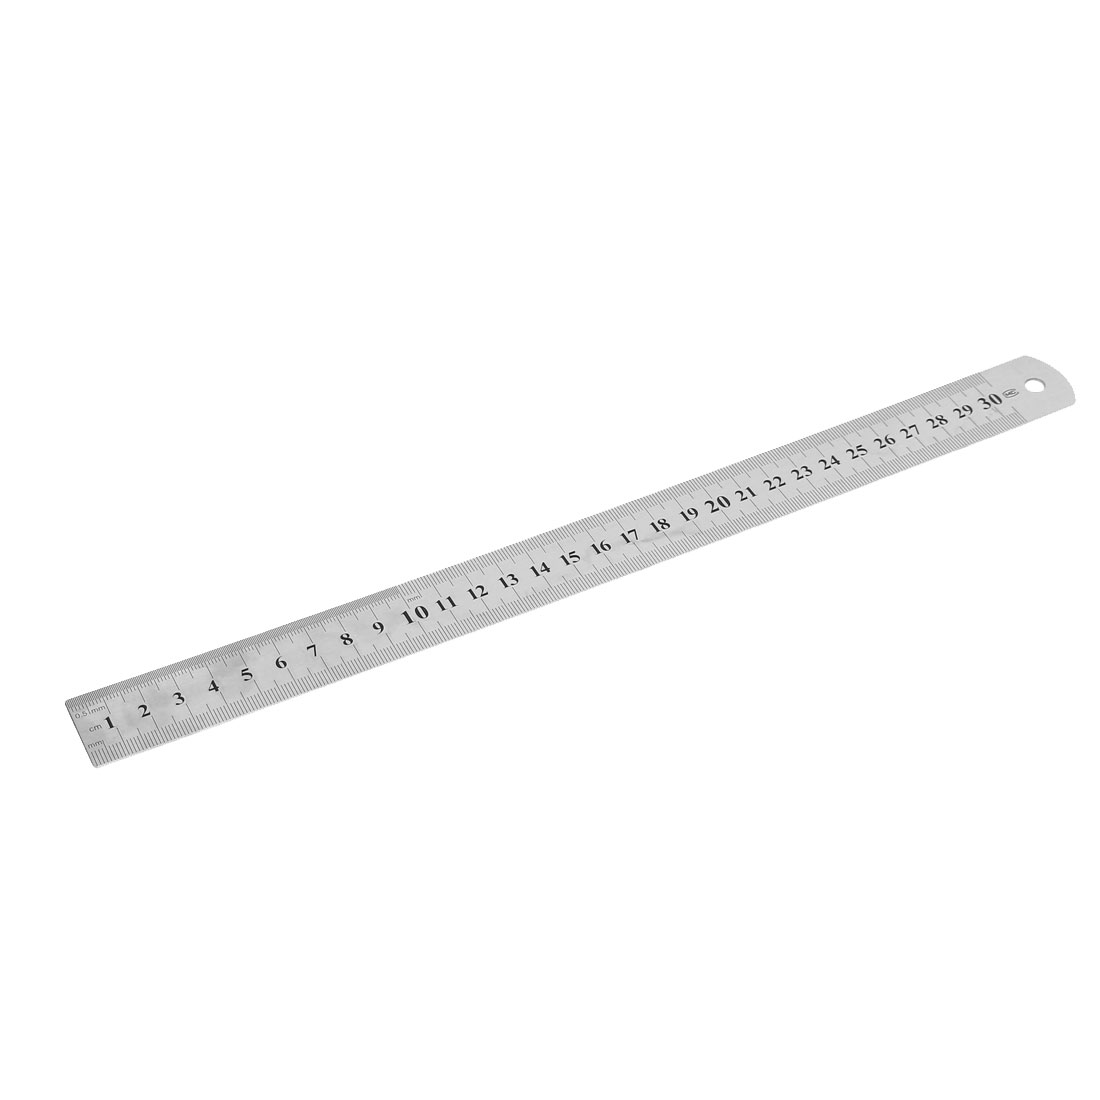 Classroom Double Side Stainless Steel Straight Ruler Measuring Tool 30cm Length